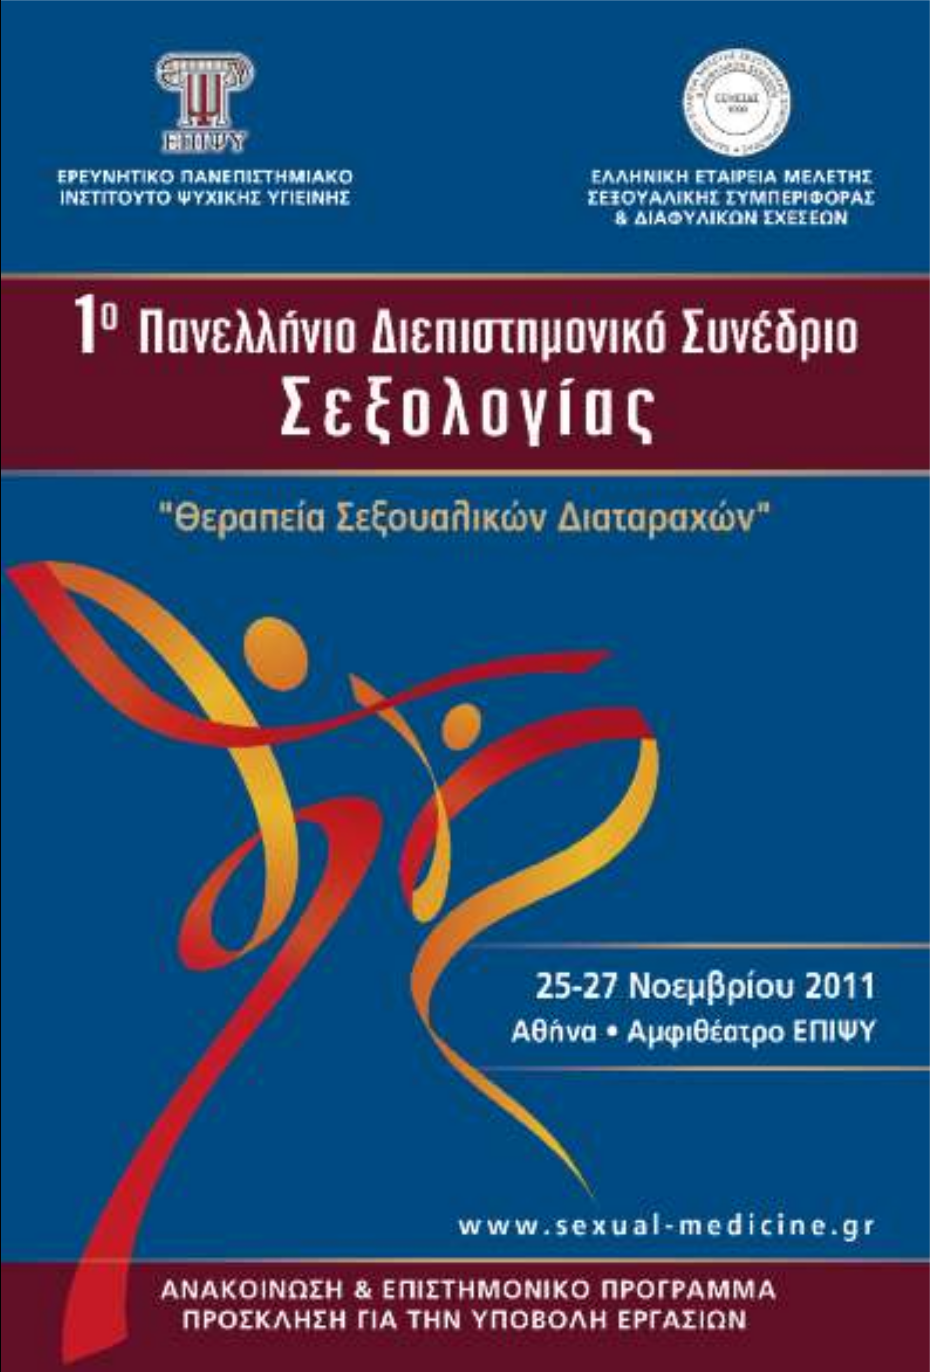 1st sexology congress cover image